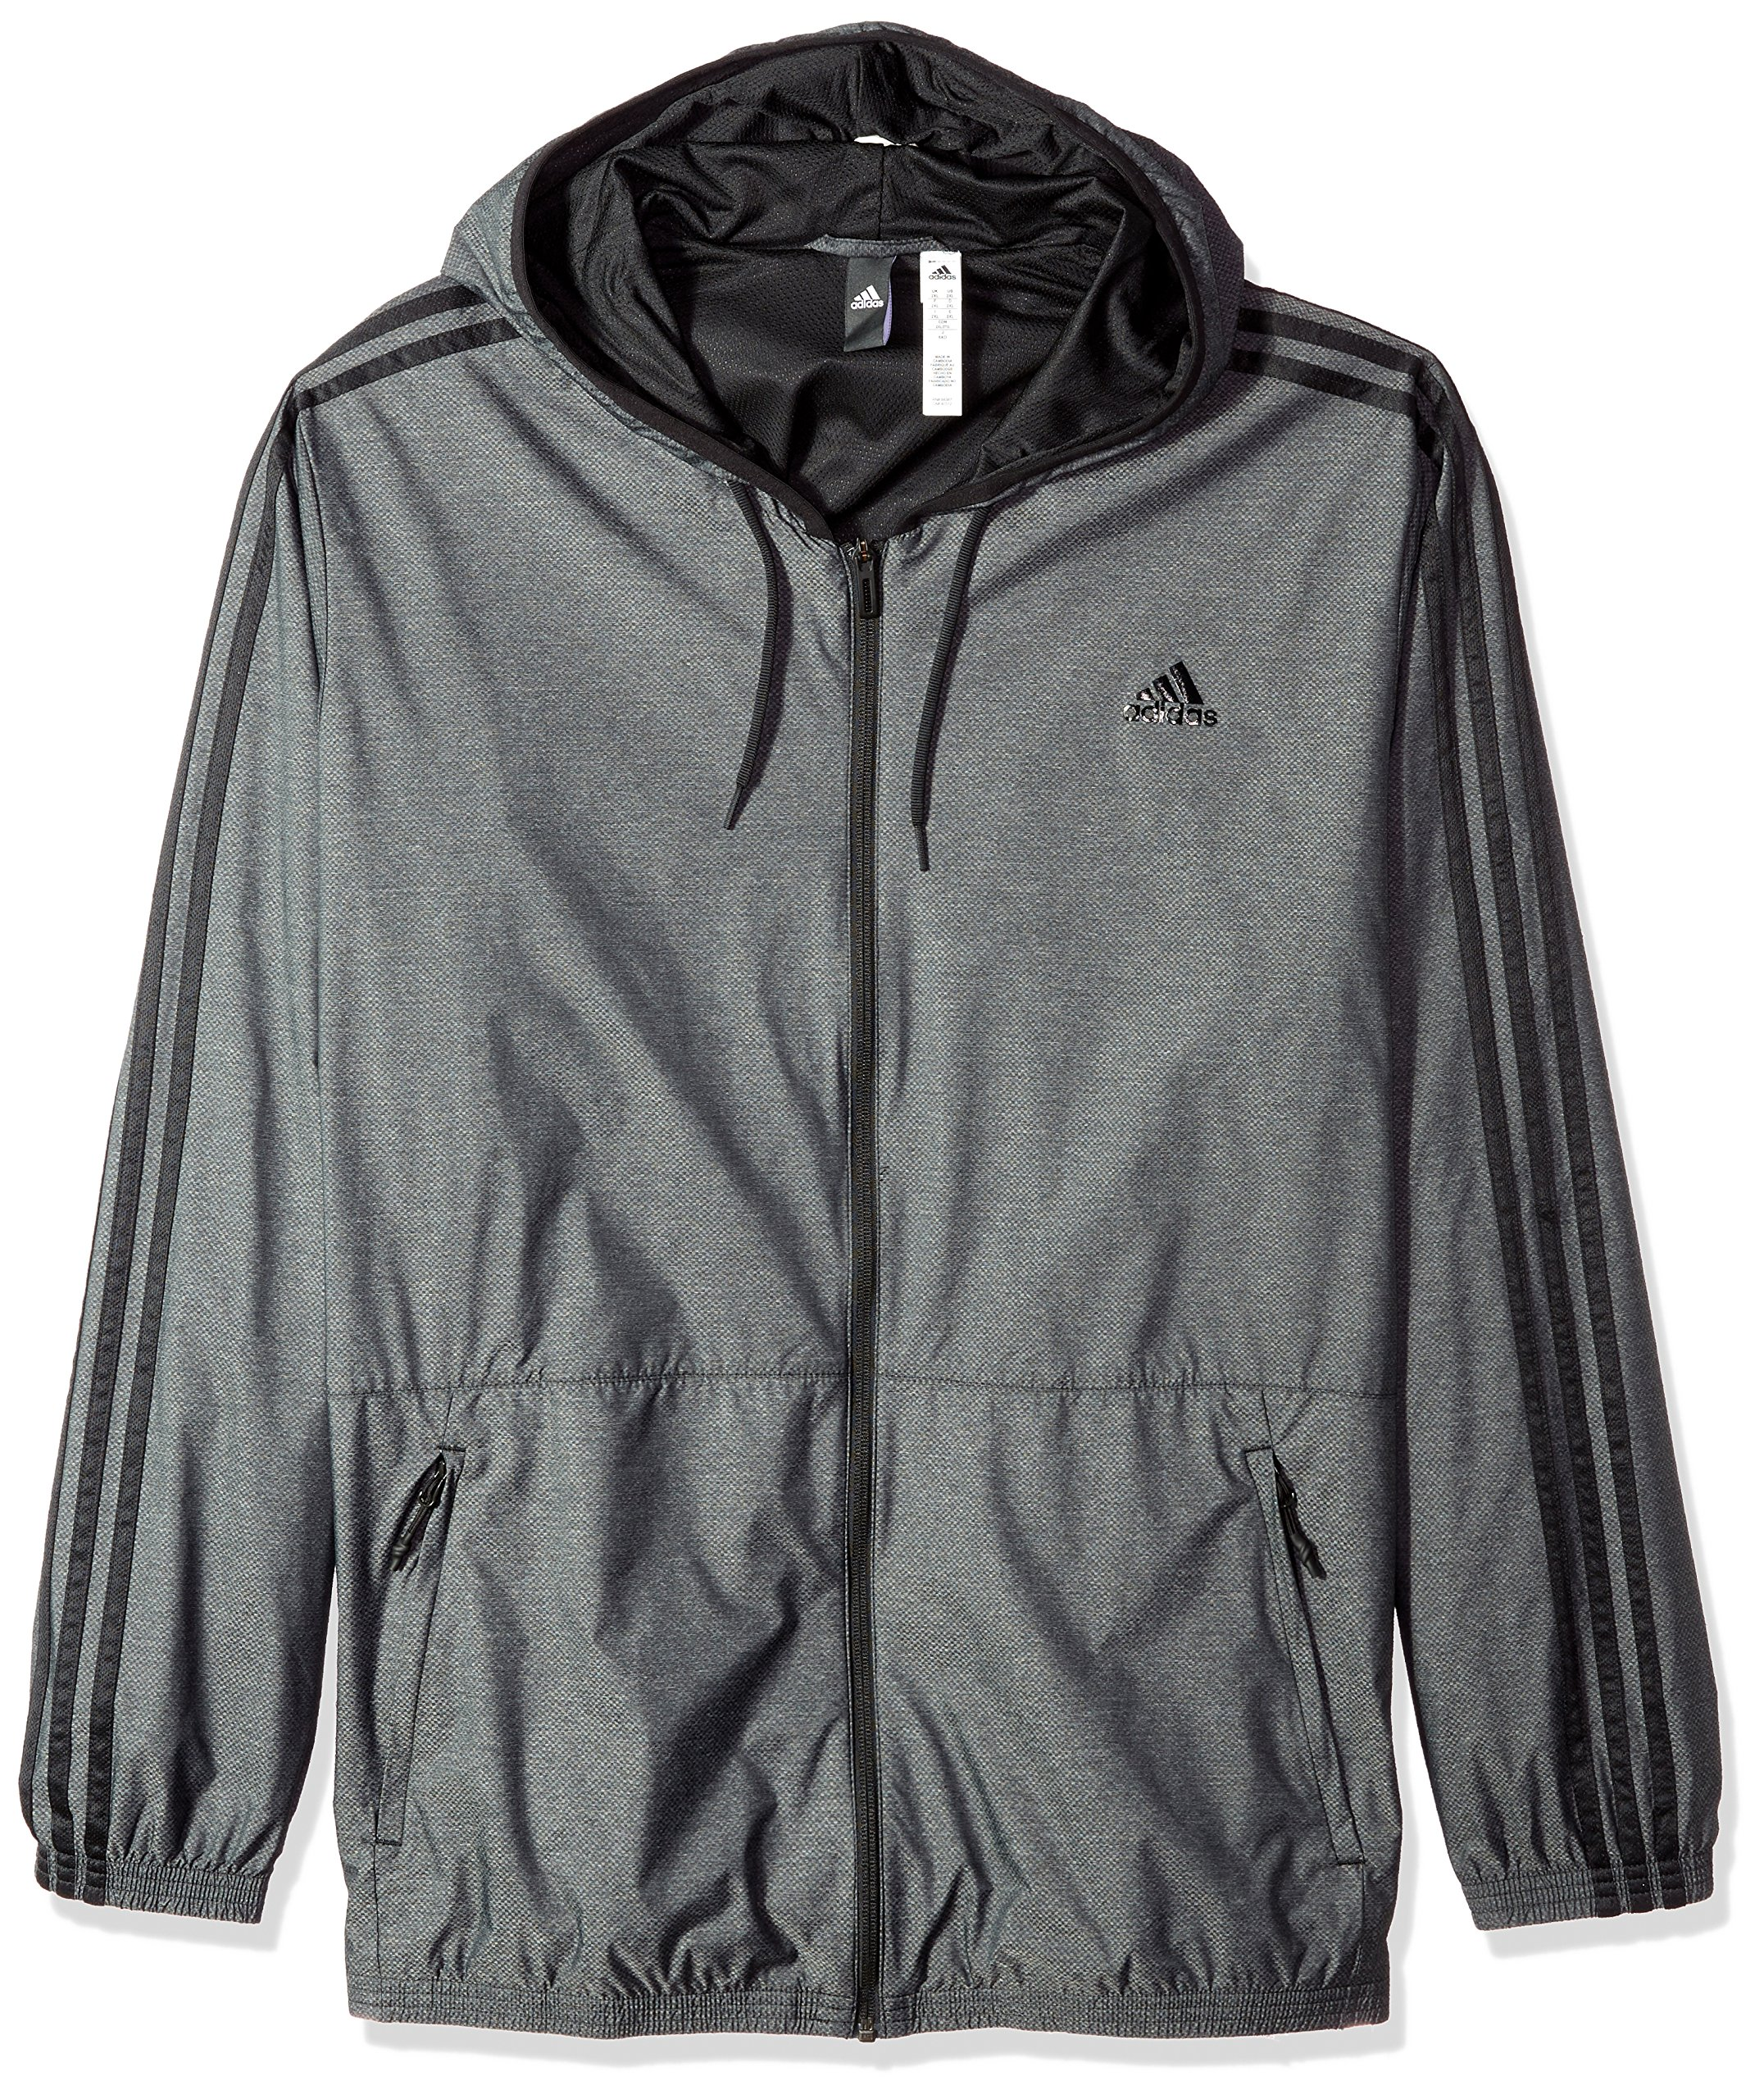 adidas Essentials (Big & Tall) Wind Jacket XLT Black